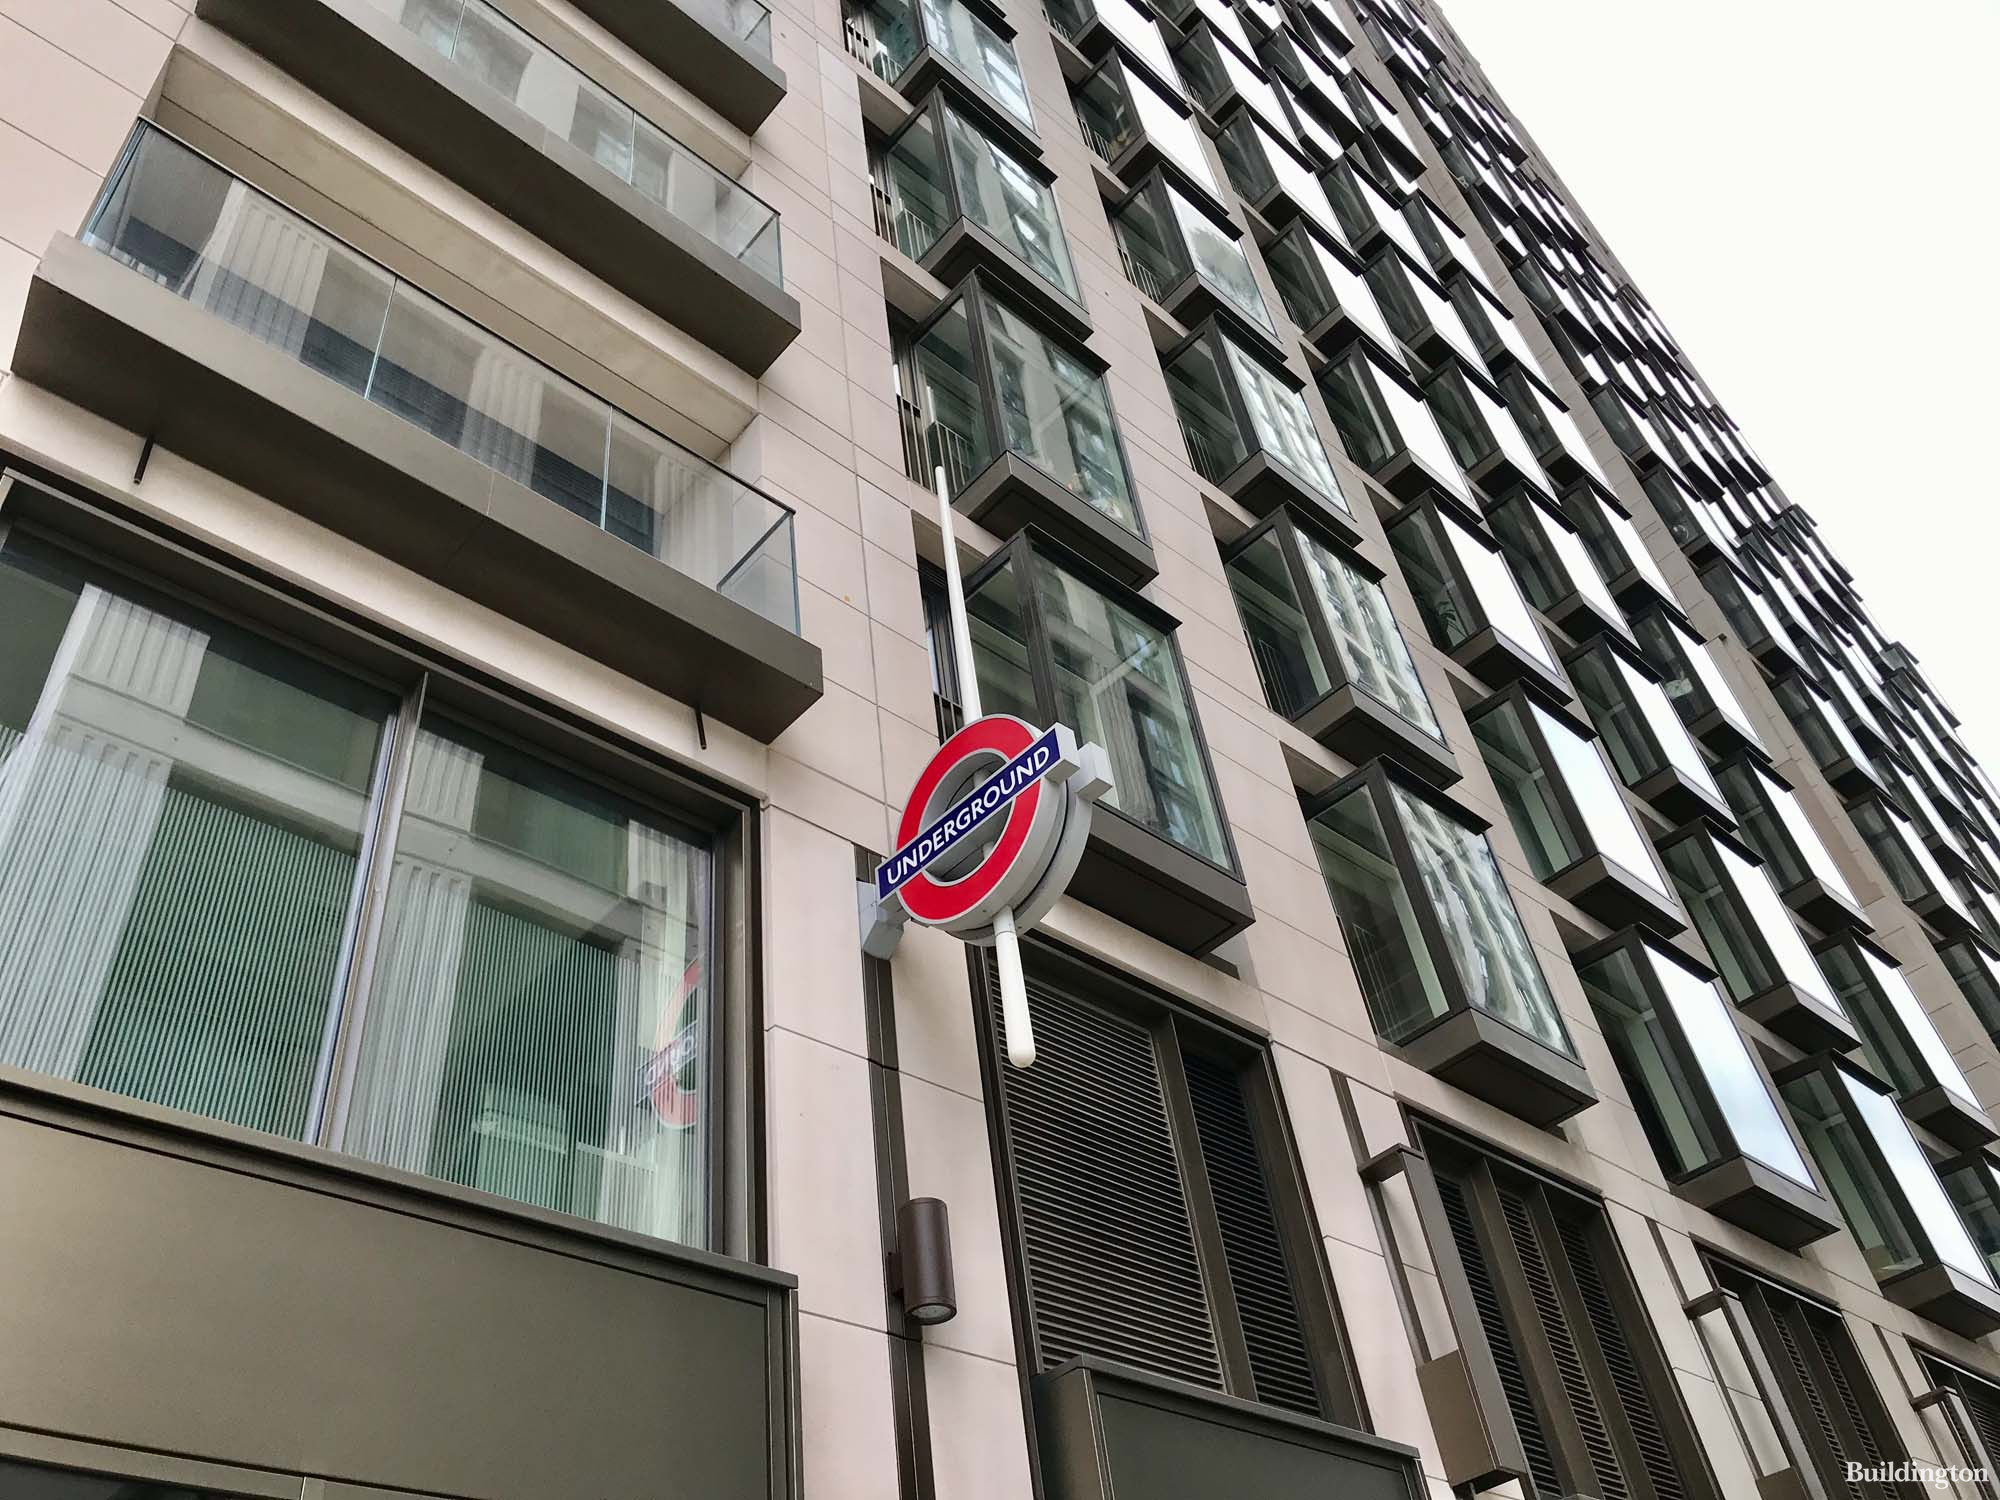 8 Casson Square apartments above Waterloo Tube Station. Building designed by Patel Taylor.